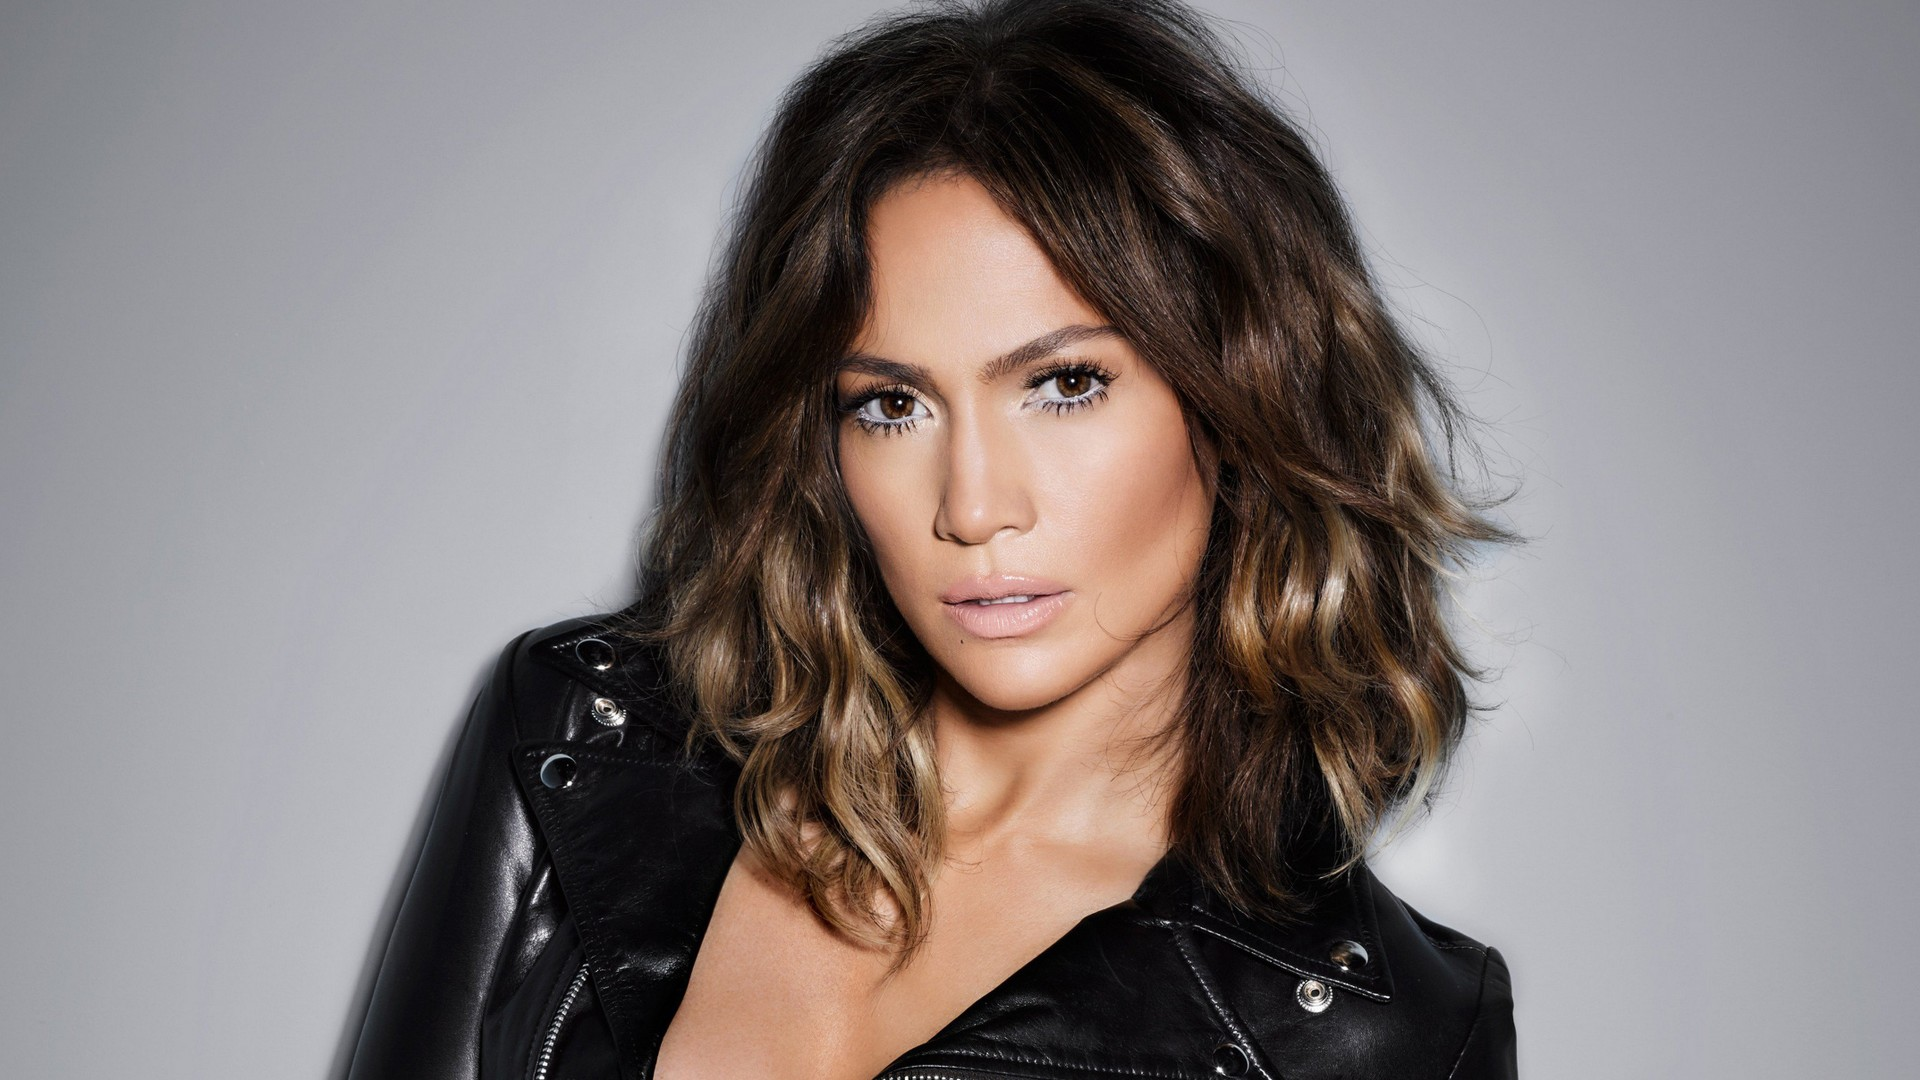 Cute Wallpaper For Androids Jennifer Lopez 2017 4k Wallpapers Hd Wallpapers Id 20517